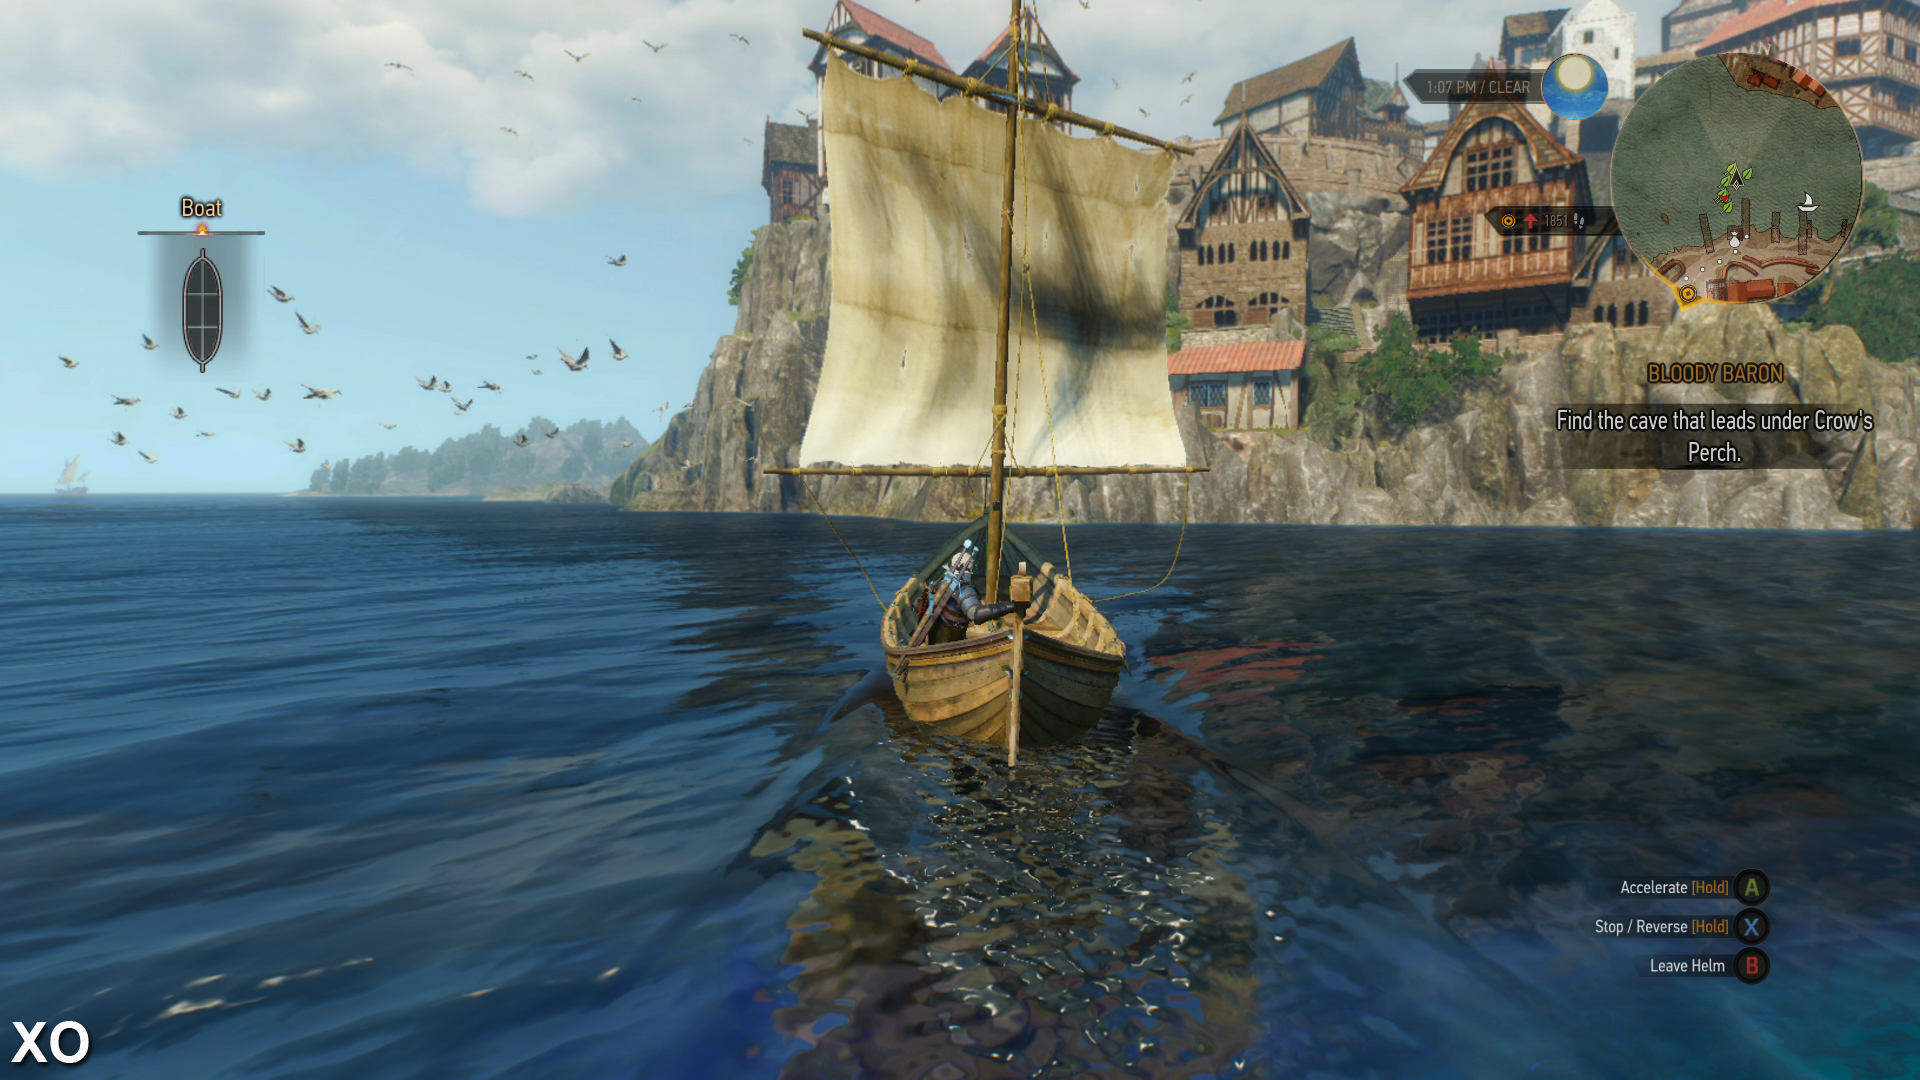 Face Off The Witcher 3 Wild Hunt Ships Tall Google Search Book Covers Diagrams Bloody This Allows For Water Simulation Meaning Boats Rock Dynamically Against Waves And Ripples Form Around Geralt As He